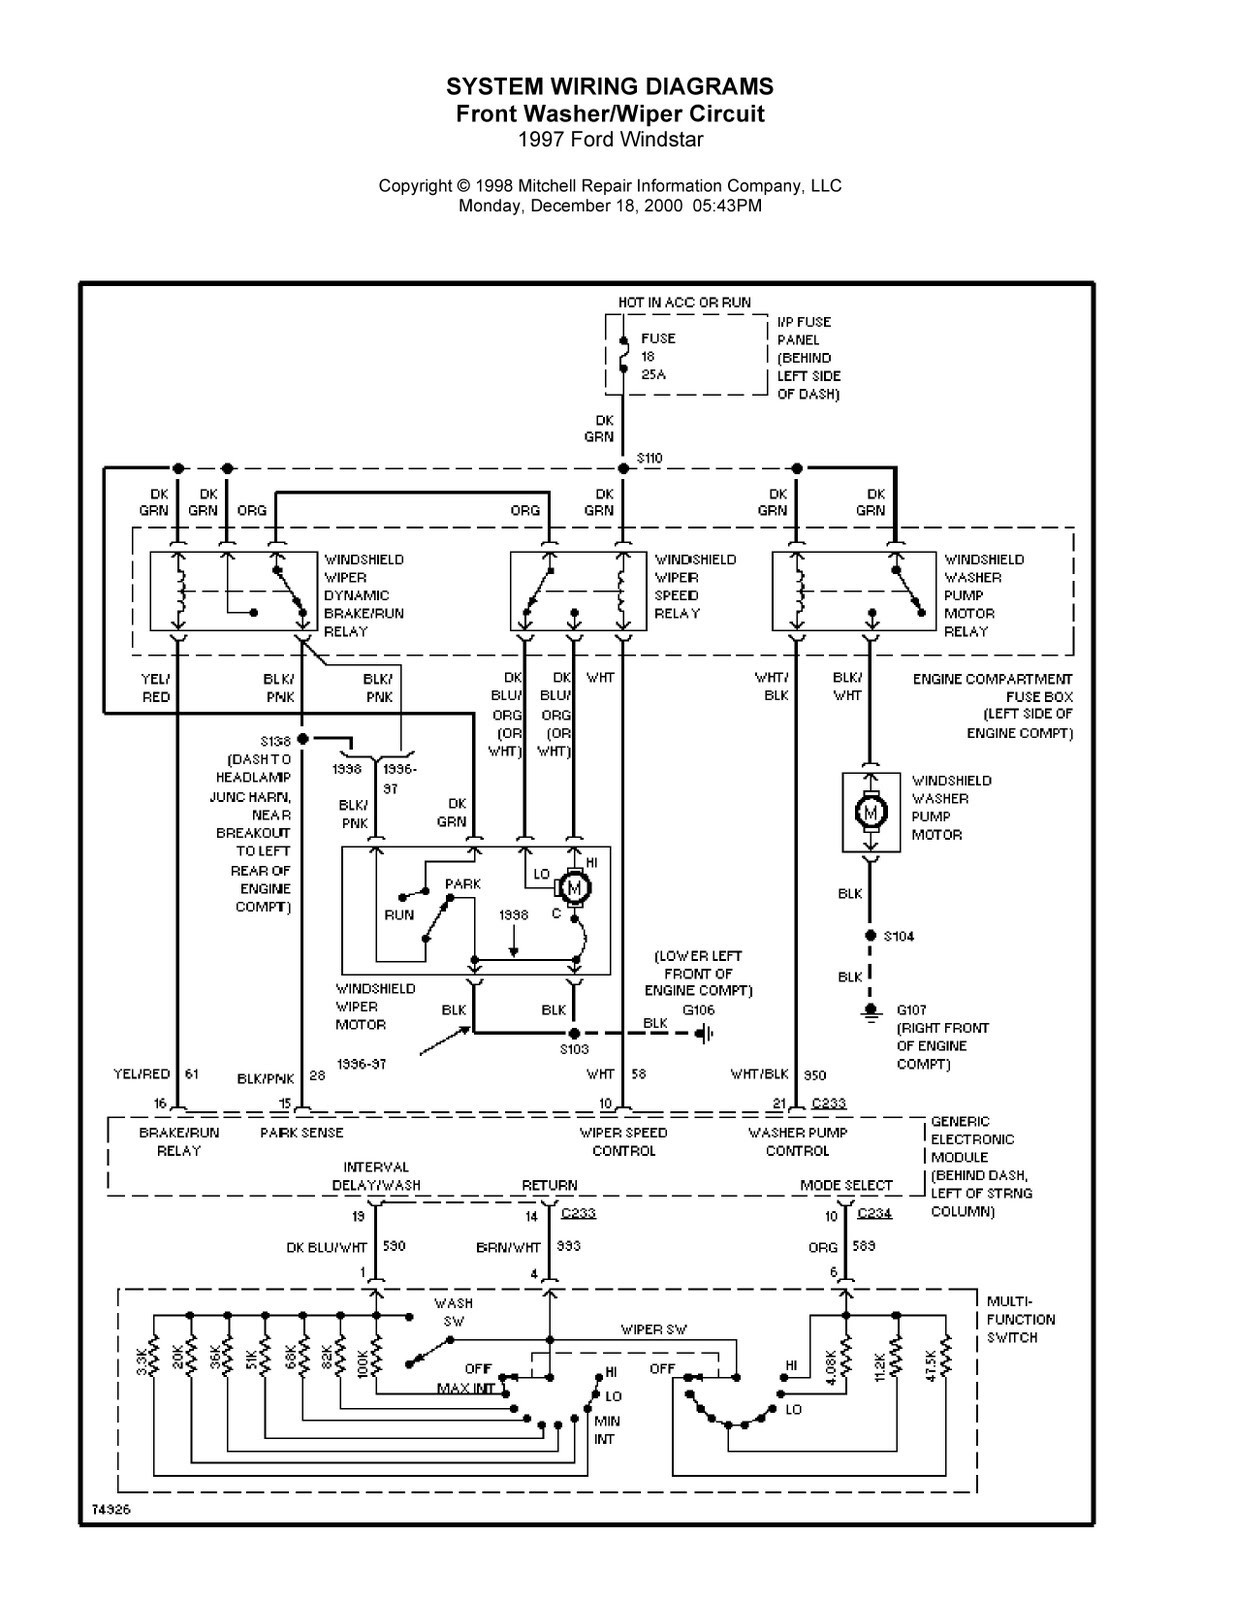 1999 windstar wiring diagram